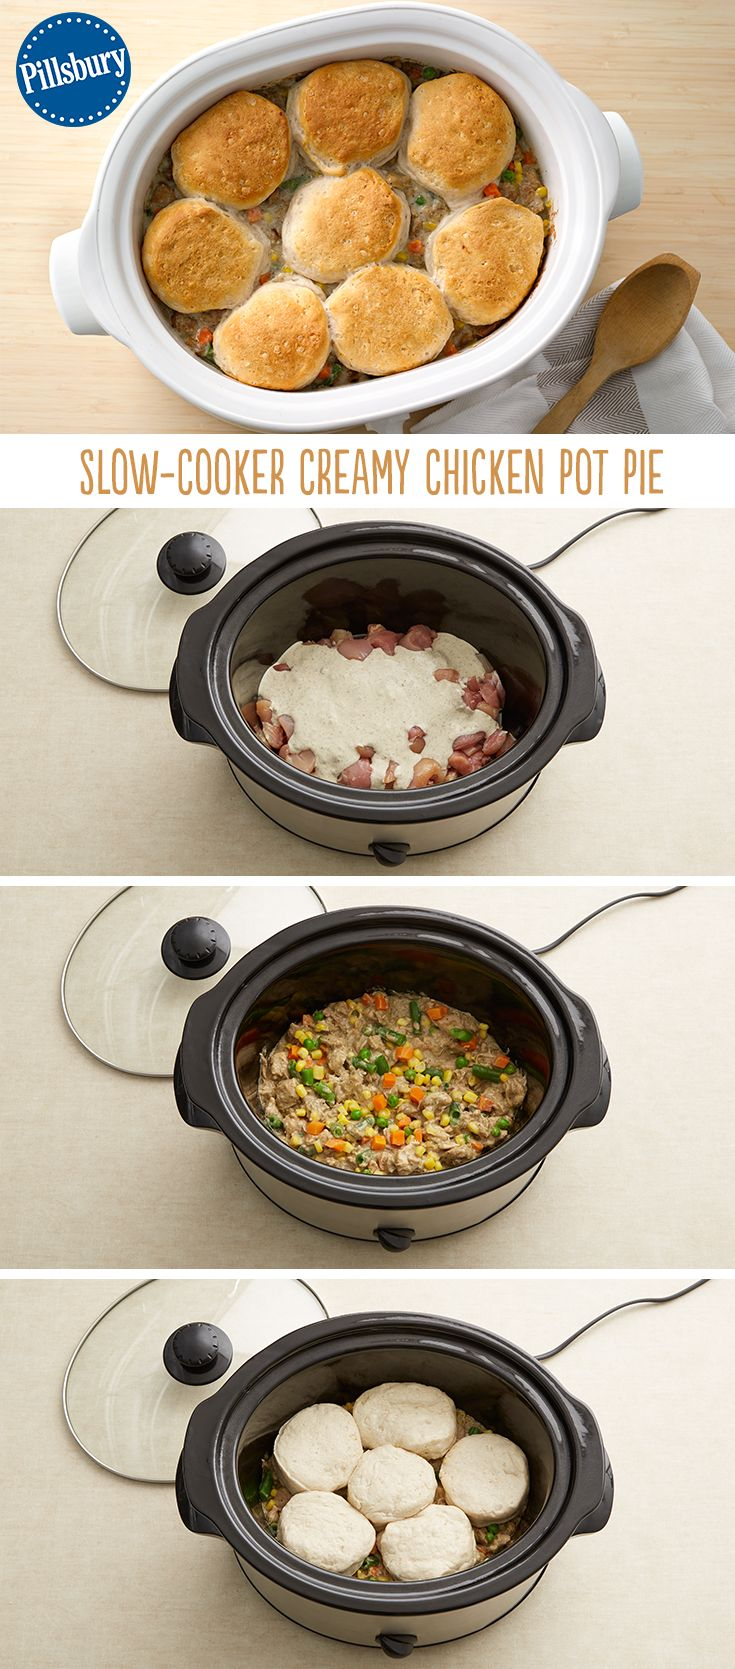 Slow-Cooker Creamy Chicken Pot Pie #crockpotmeals